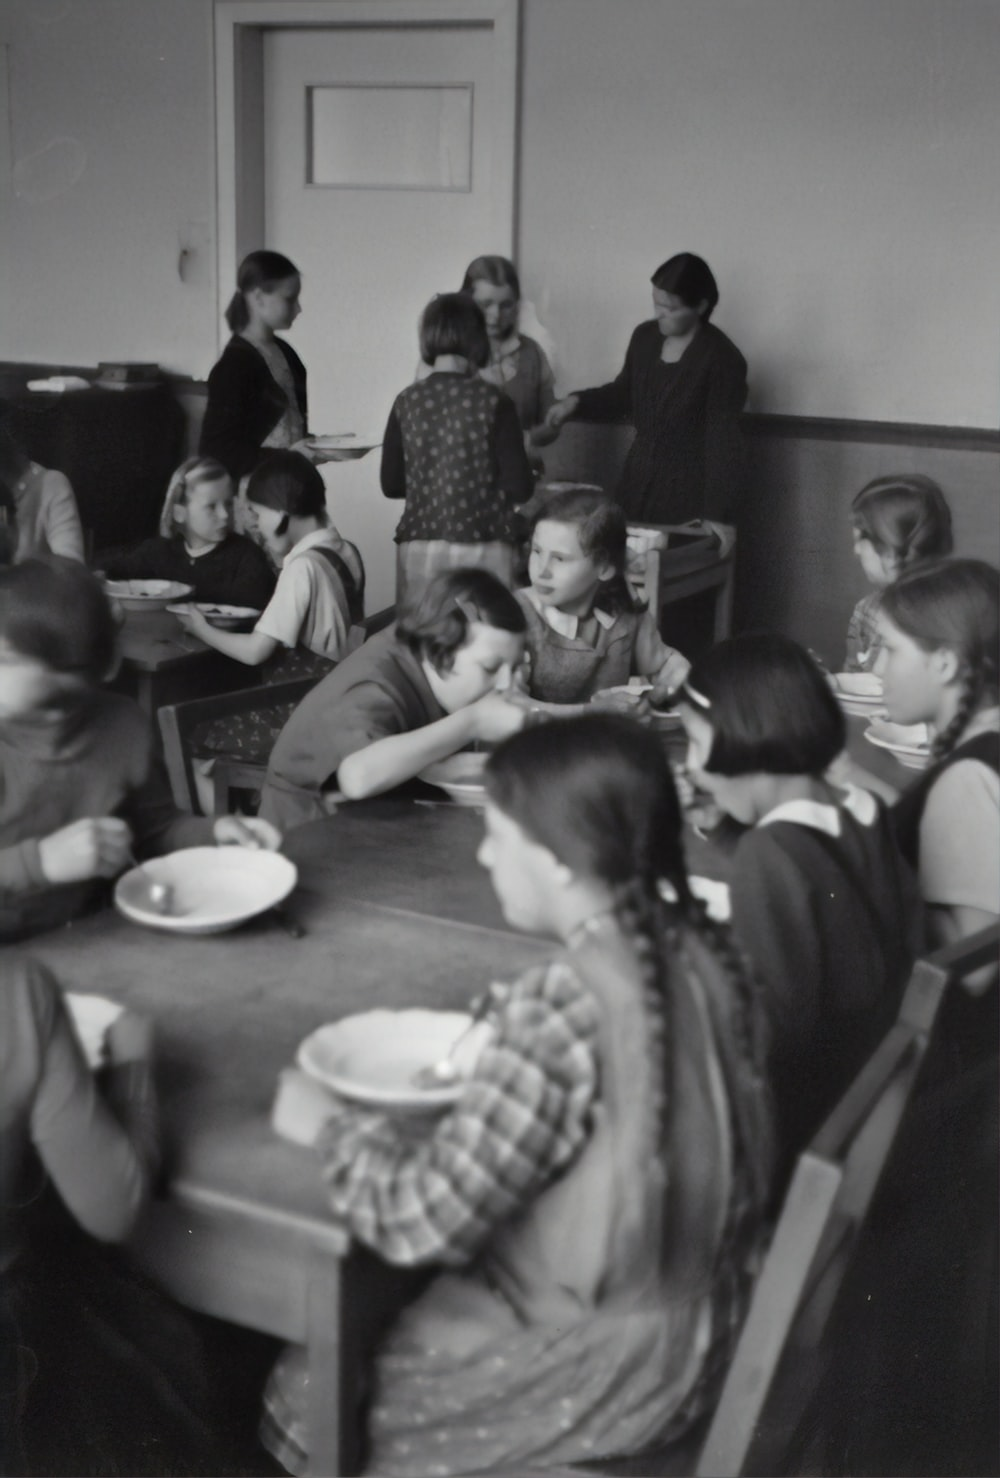 grayscale photography of children sitting while eating near table